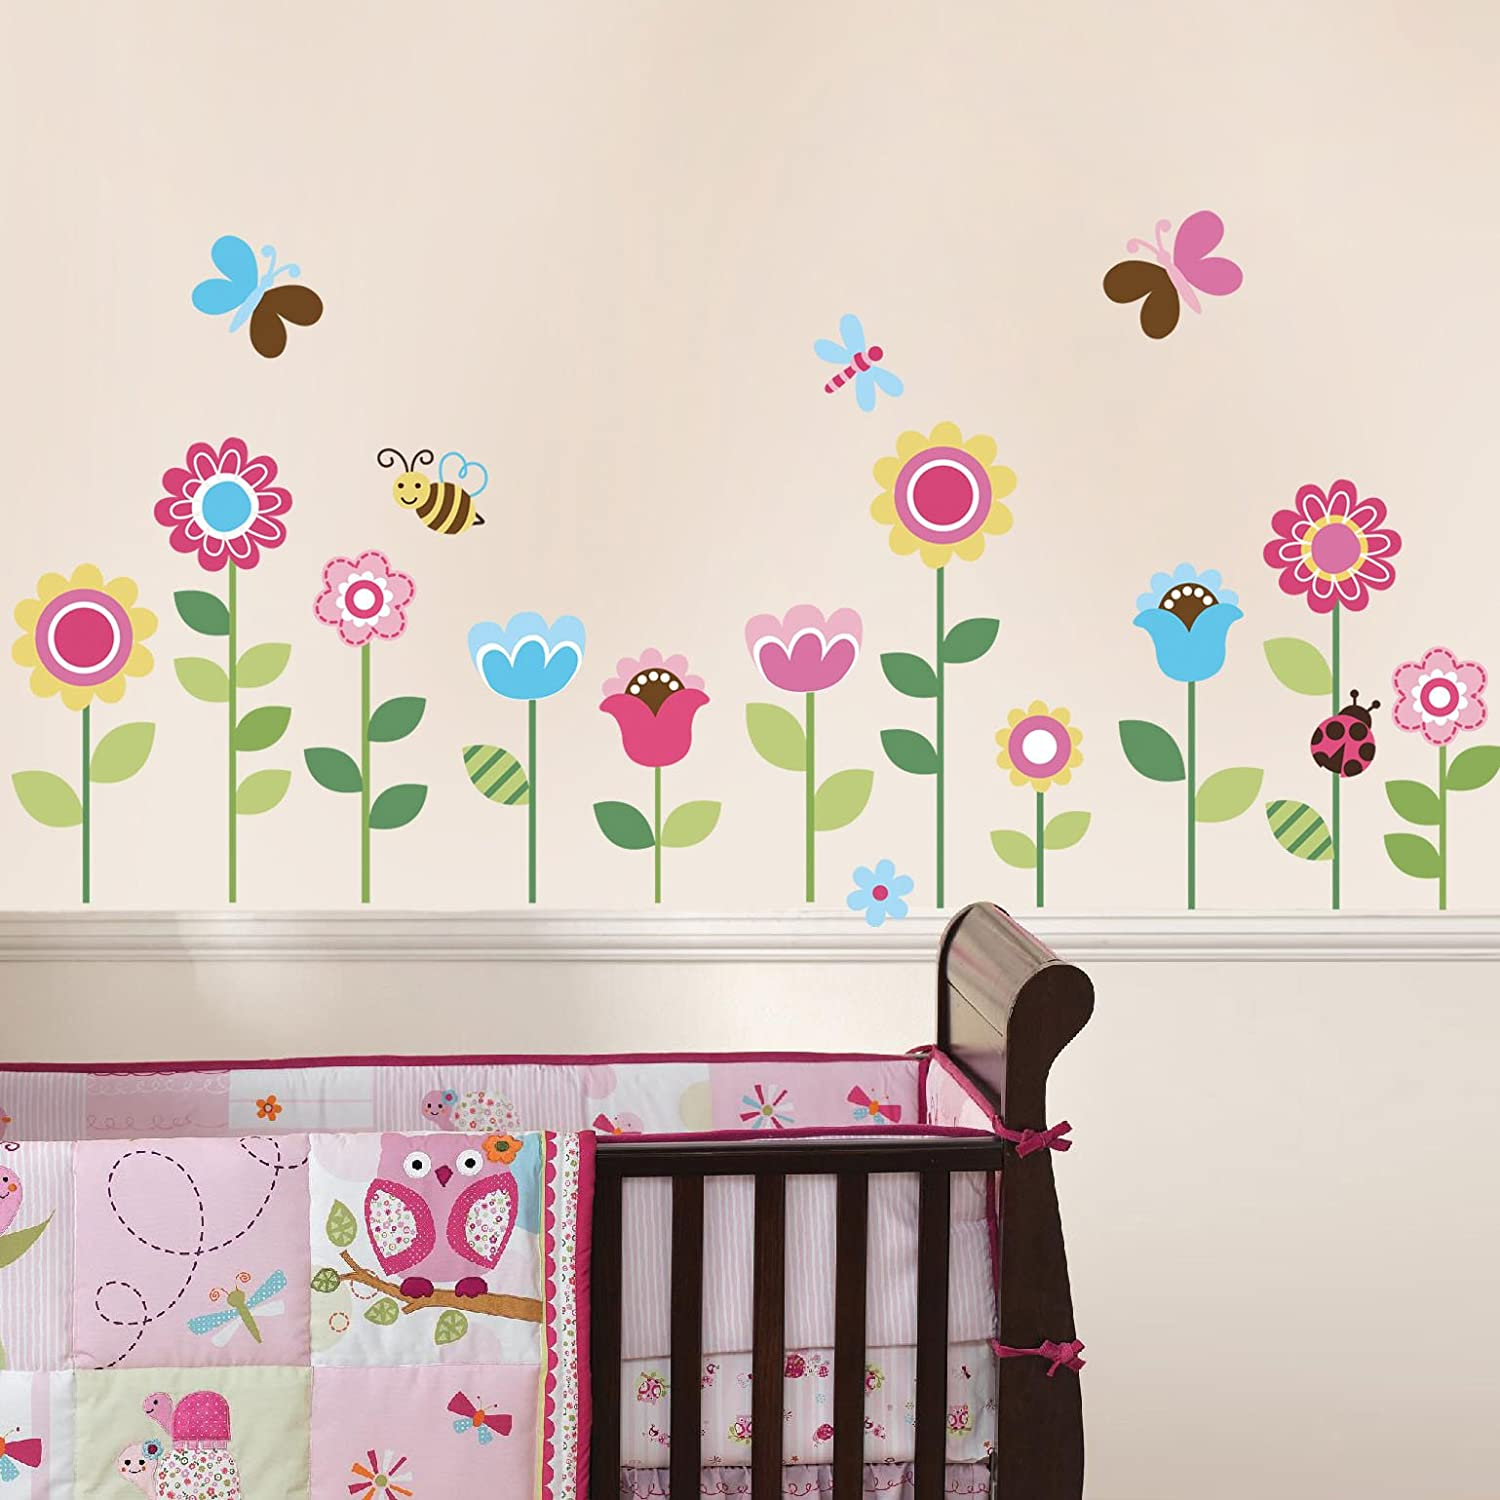 Kids room wall decor stickers - Amazon Com Garden Flowers Baby Nursery Peel Stick Wall Sticker Decals Baby